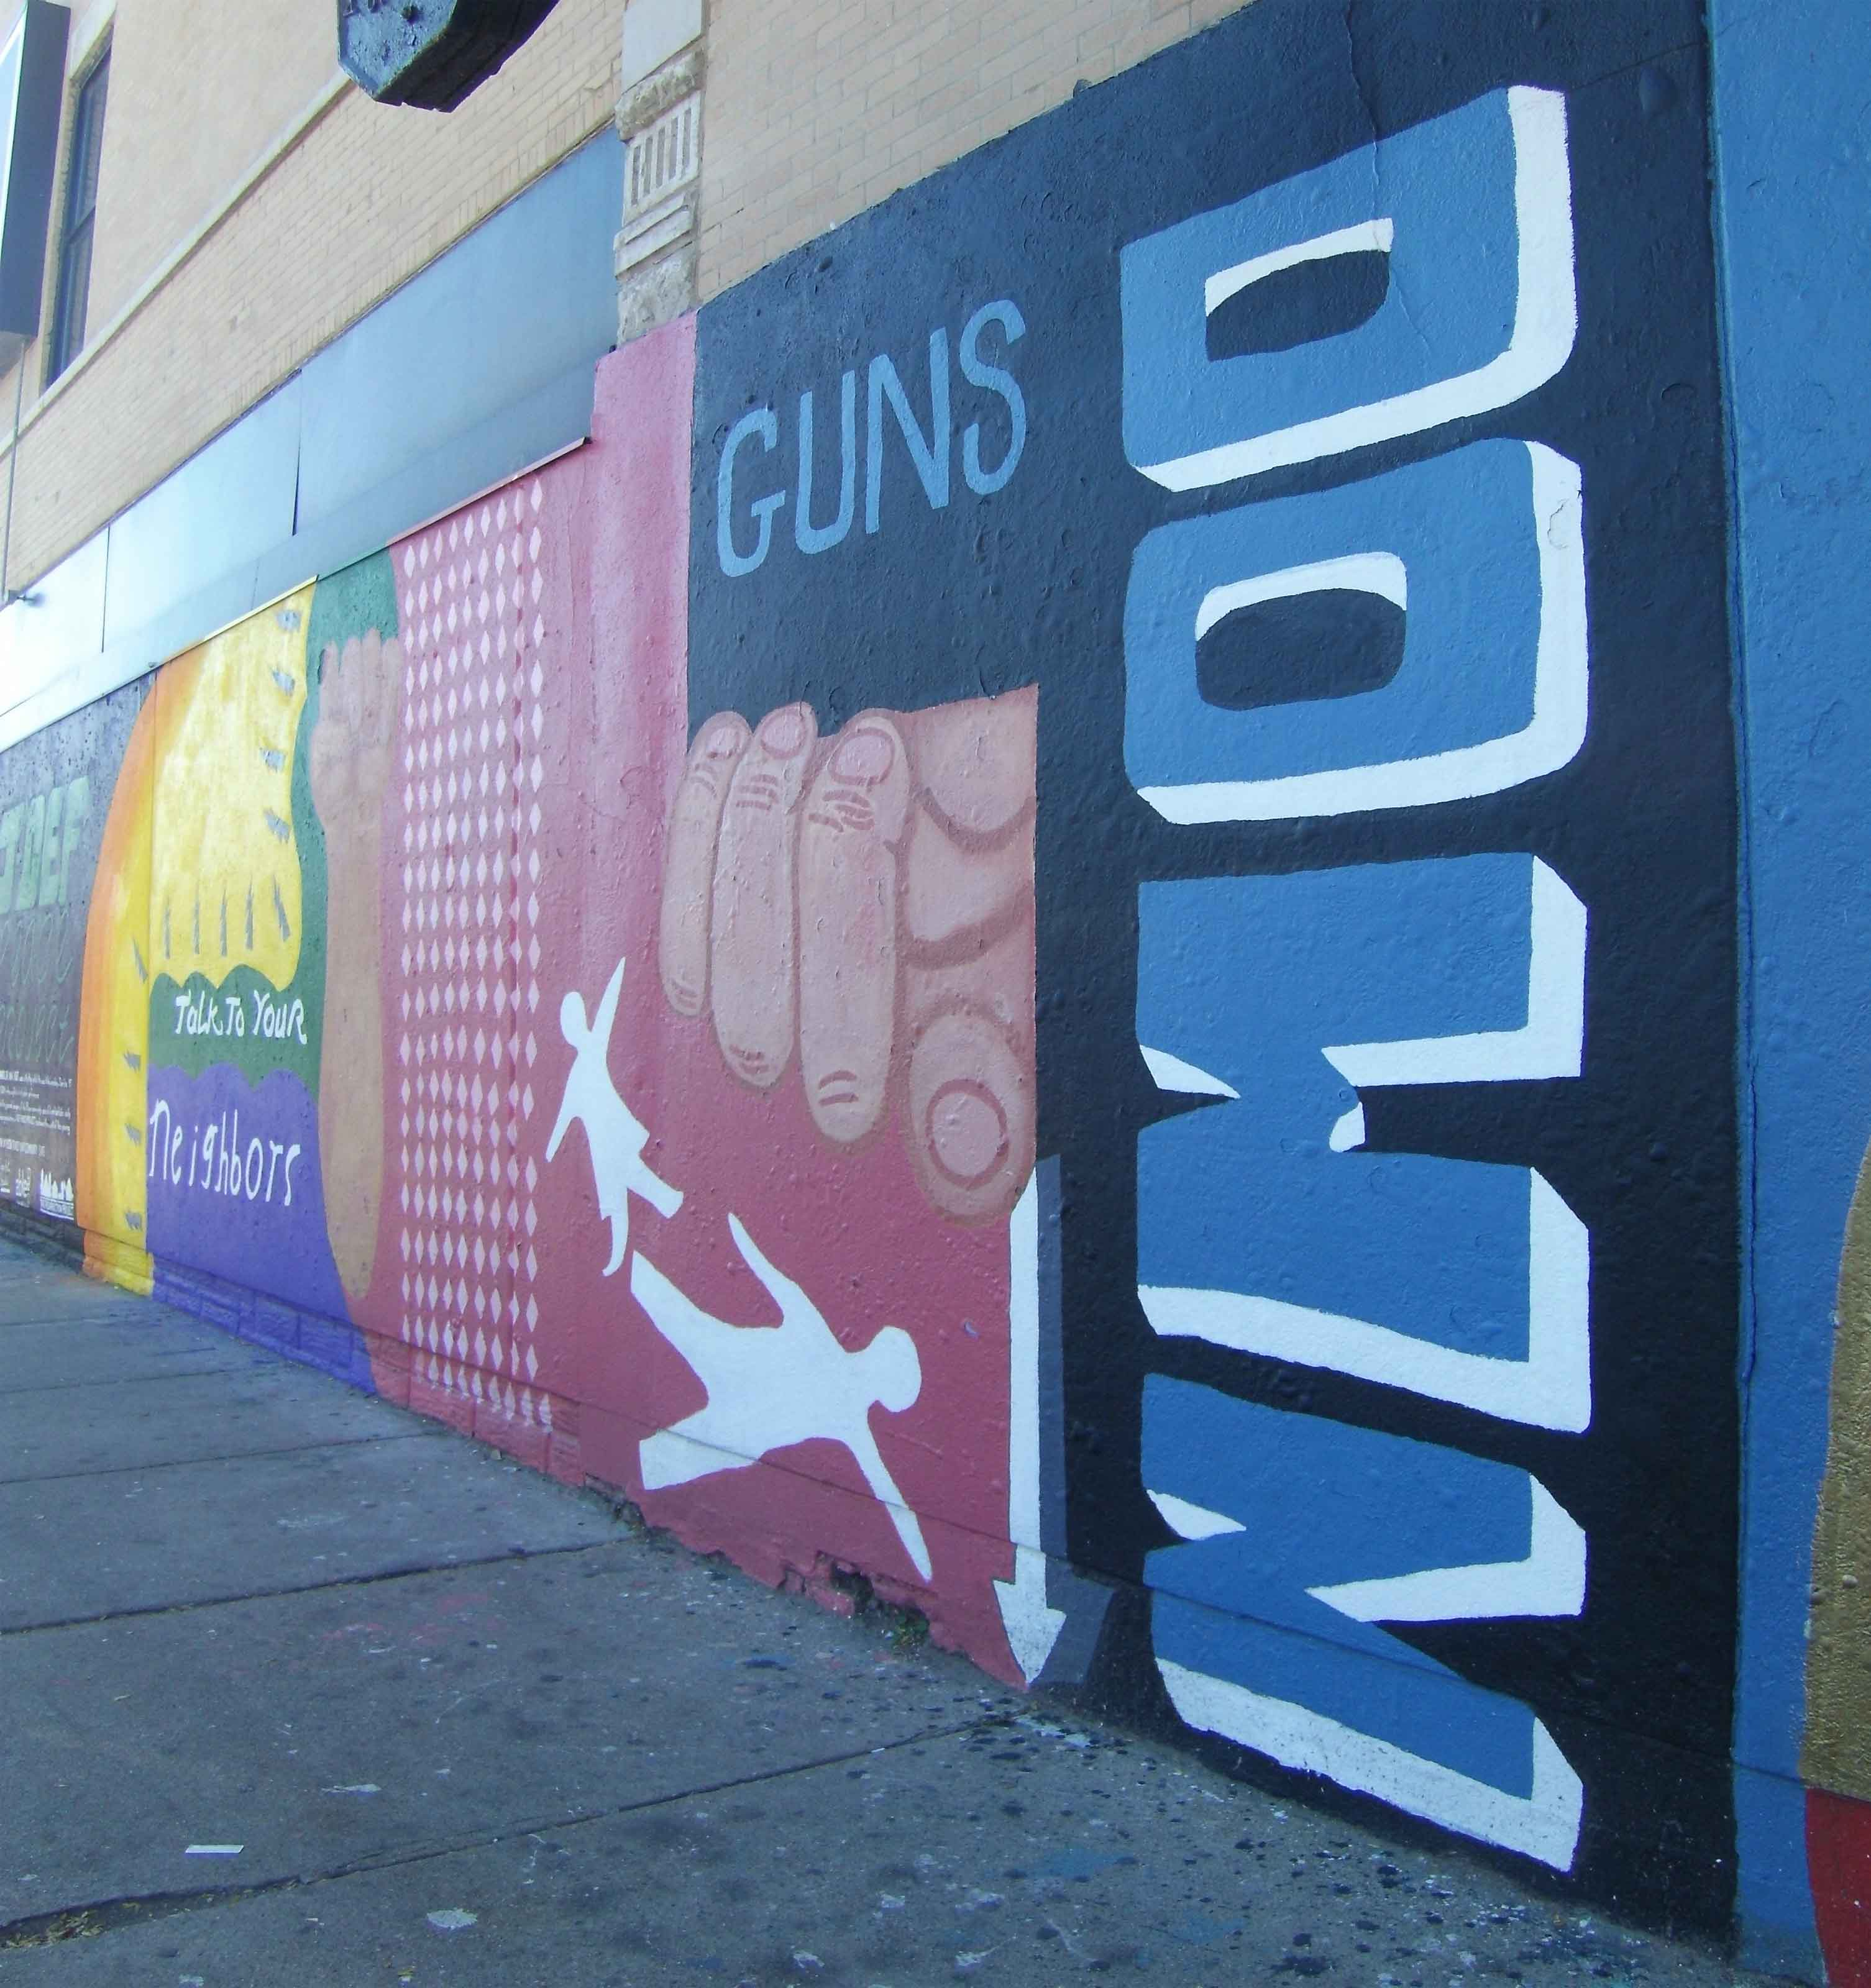 Anti-Violence Murals in Pilsen Chicago